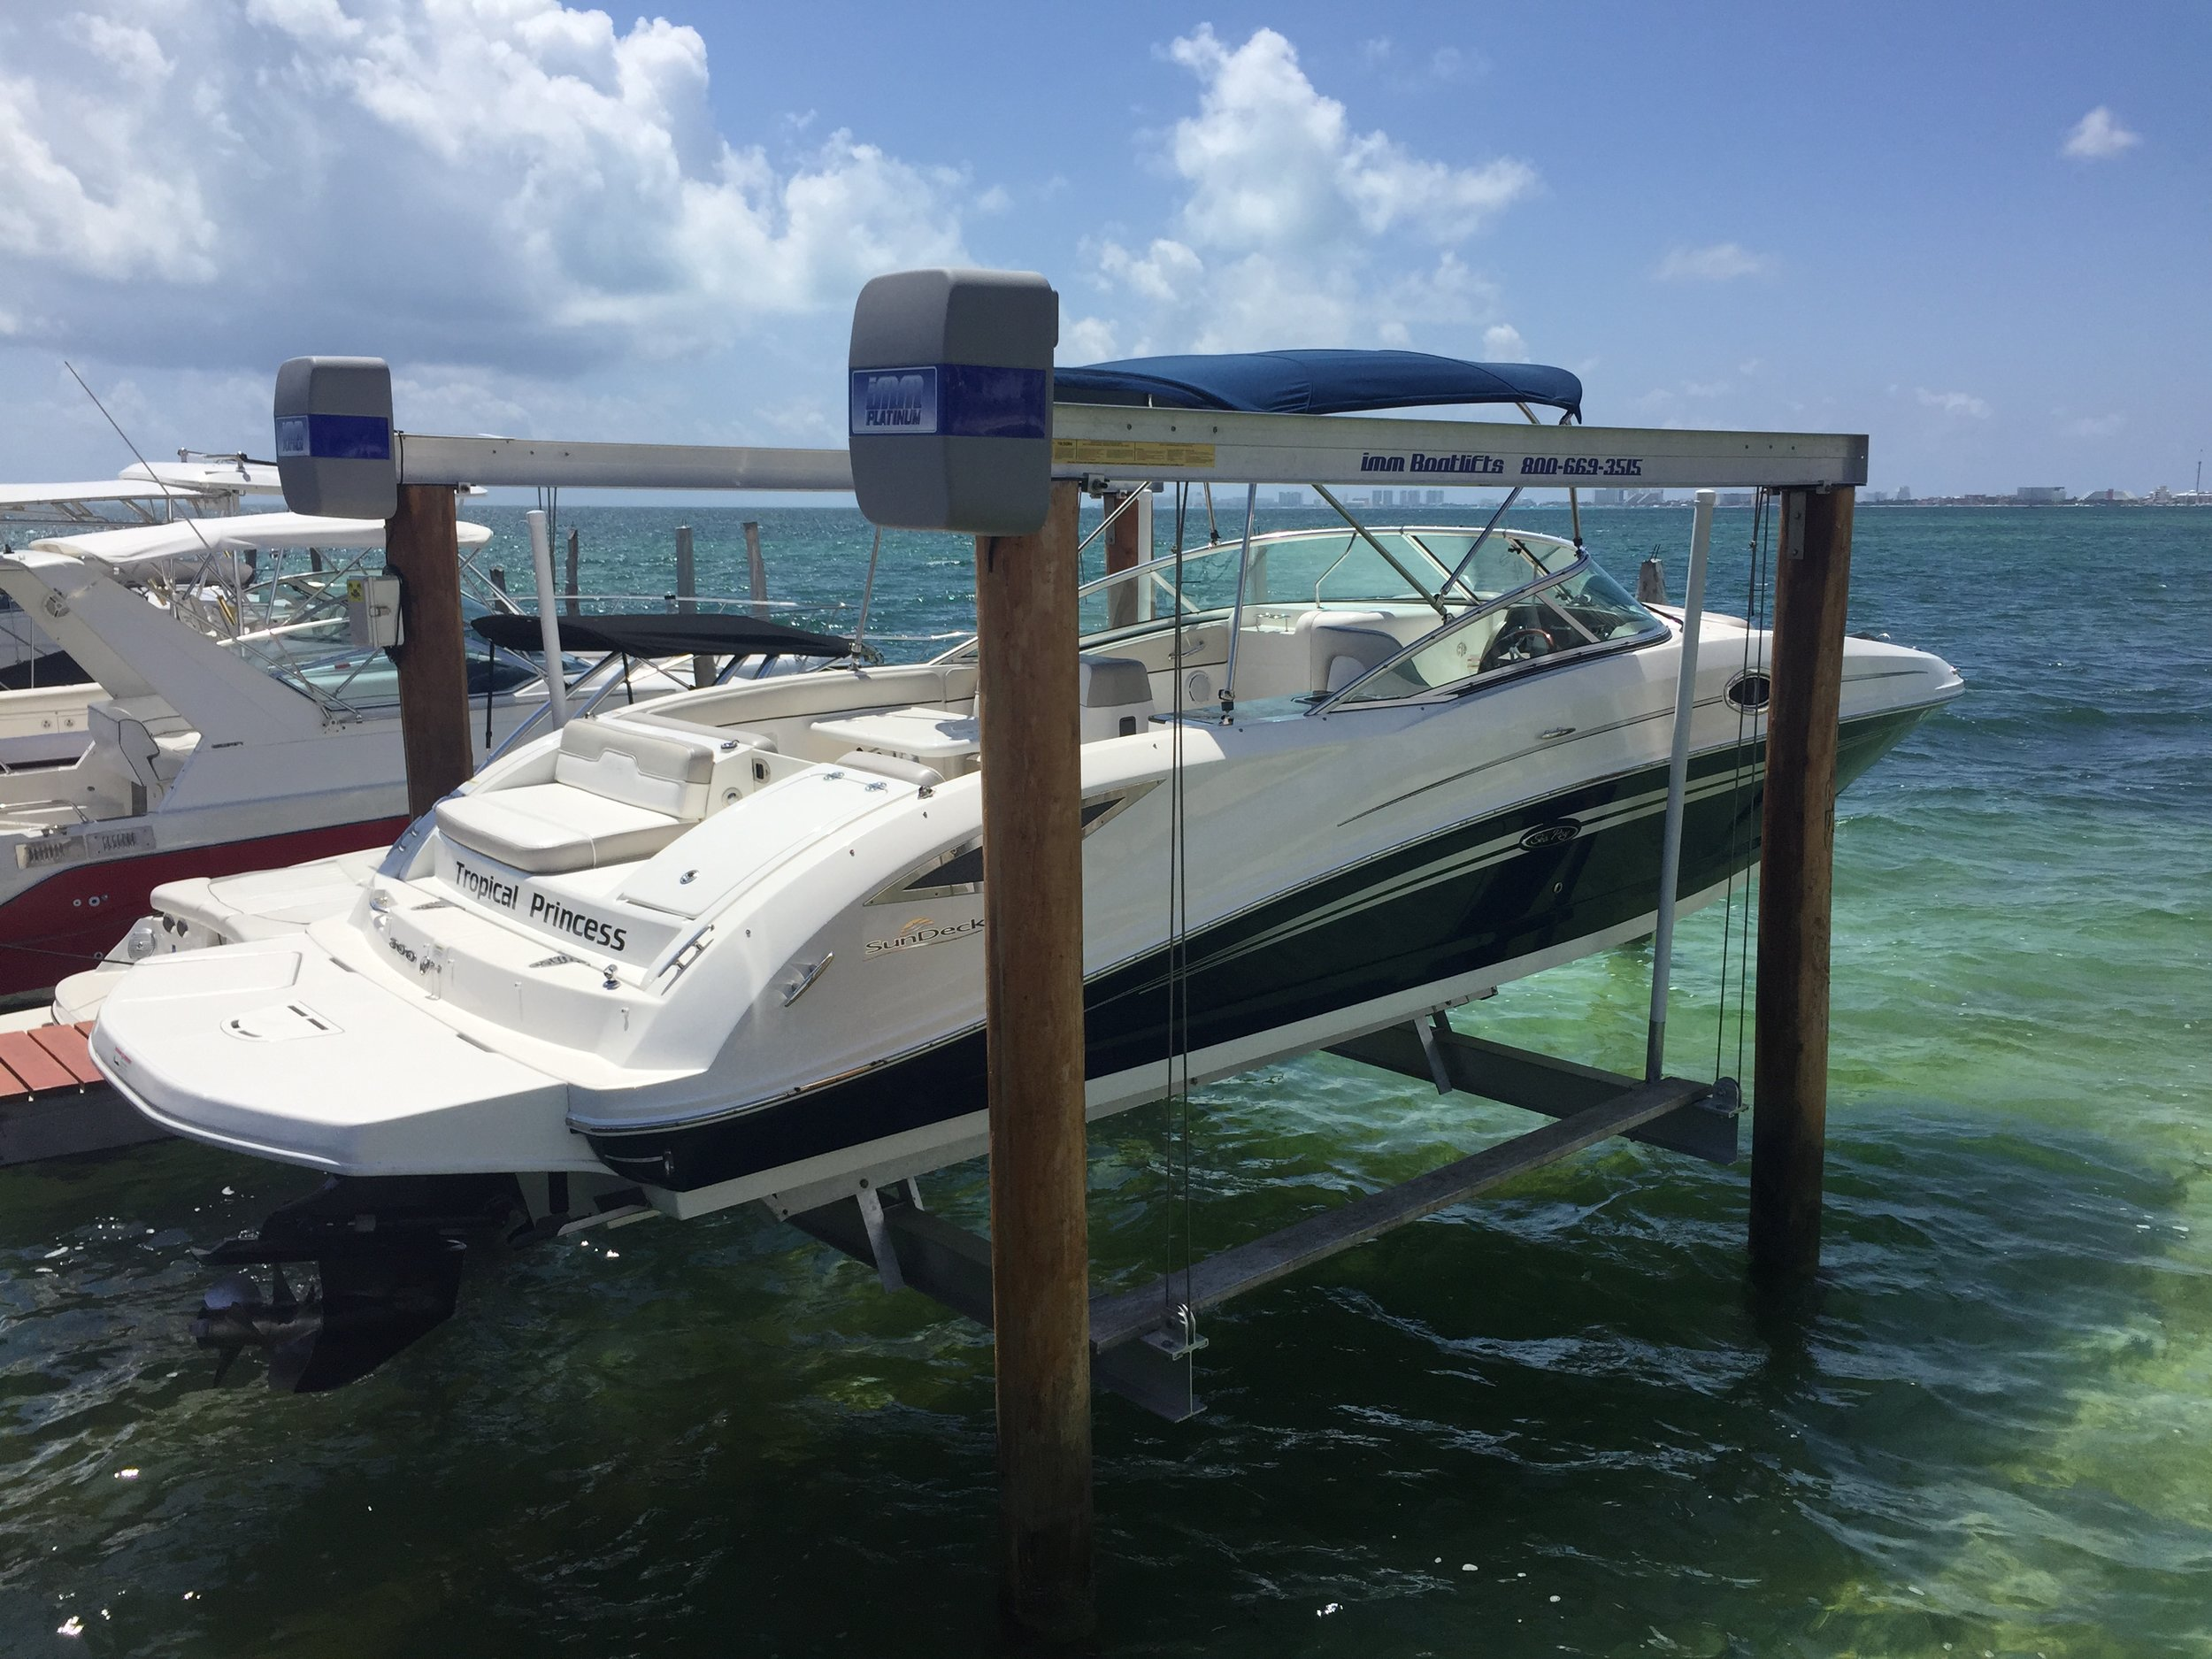 IMM Platinum 4 post boat lift by Boat Lifts Of South Florida in Islamorada, Fl.